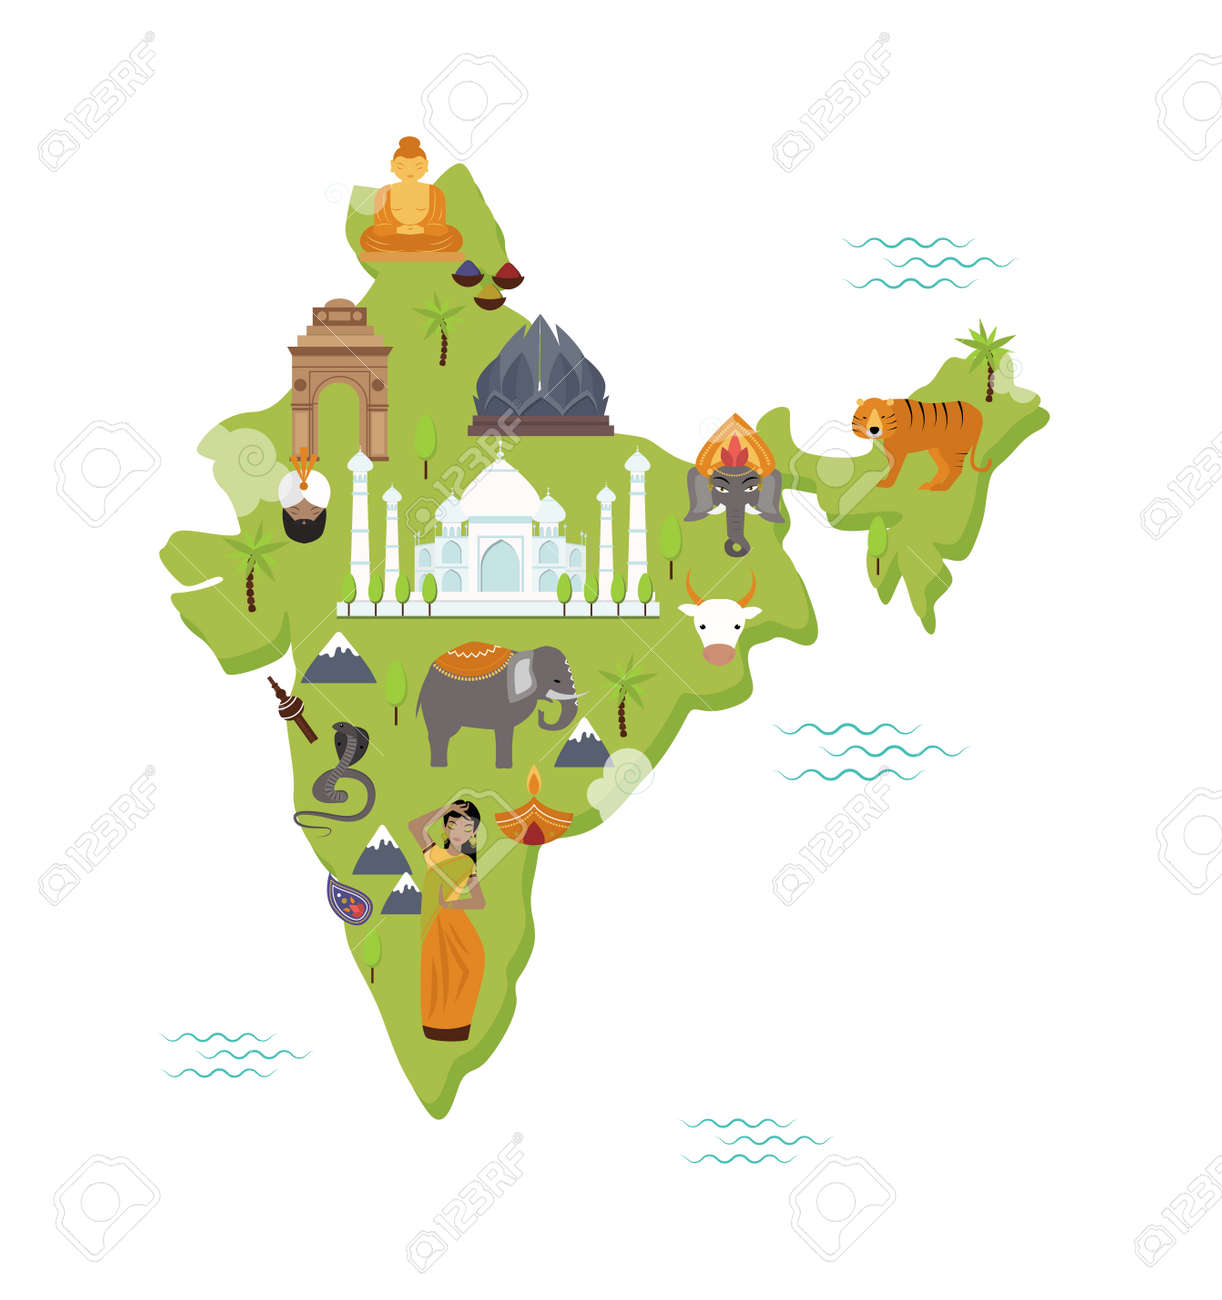 Traditional Symbols Country Travel National Form Map India Flat